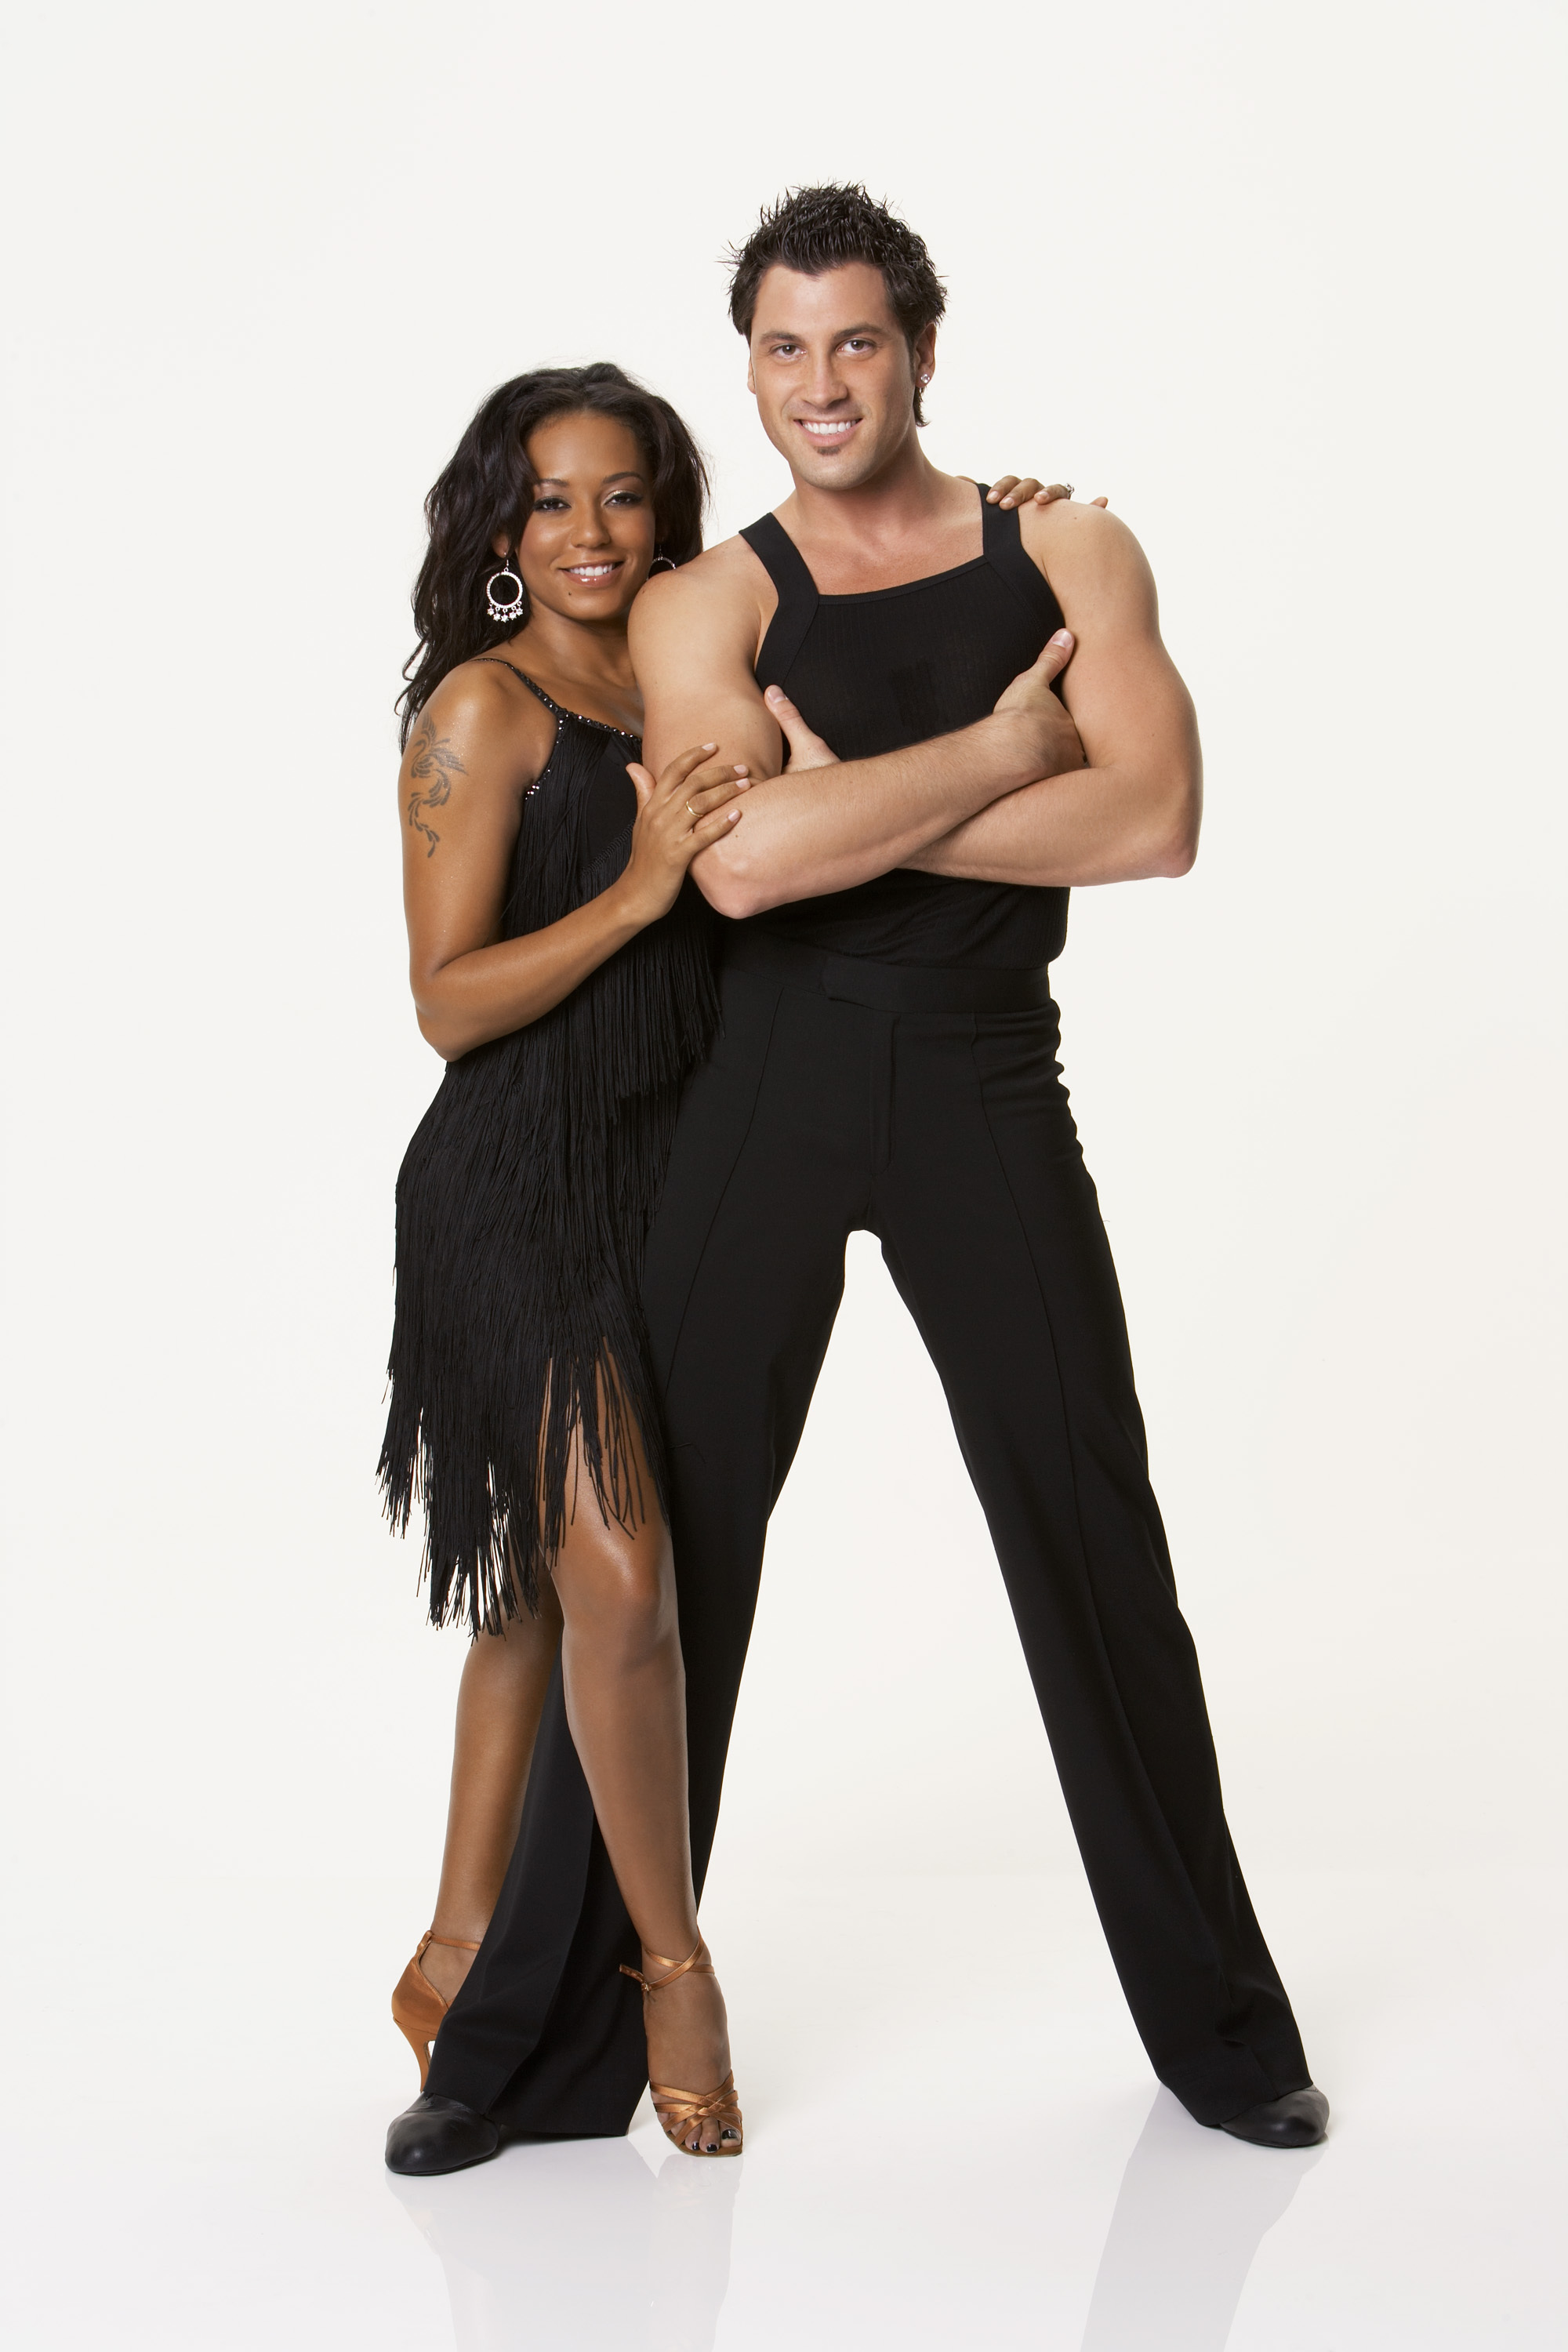 Dancing with the Stars photo #285252